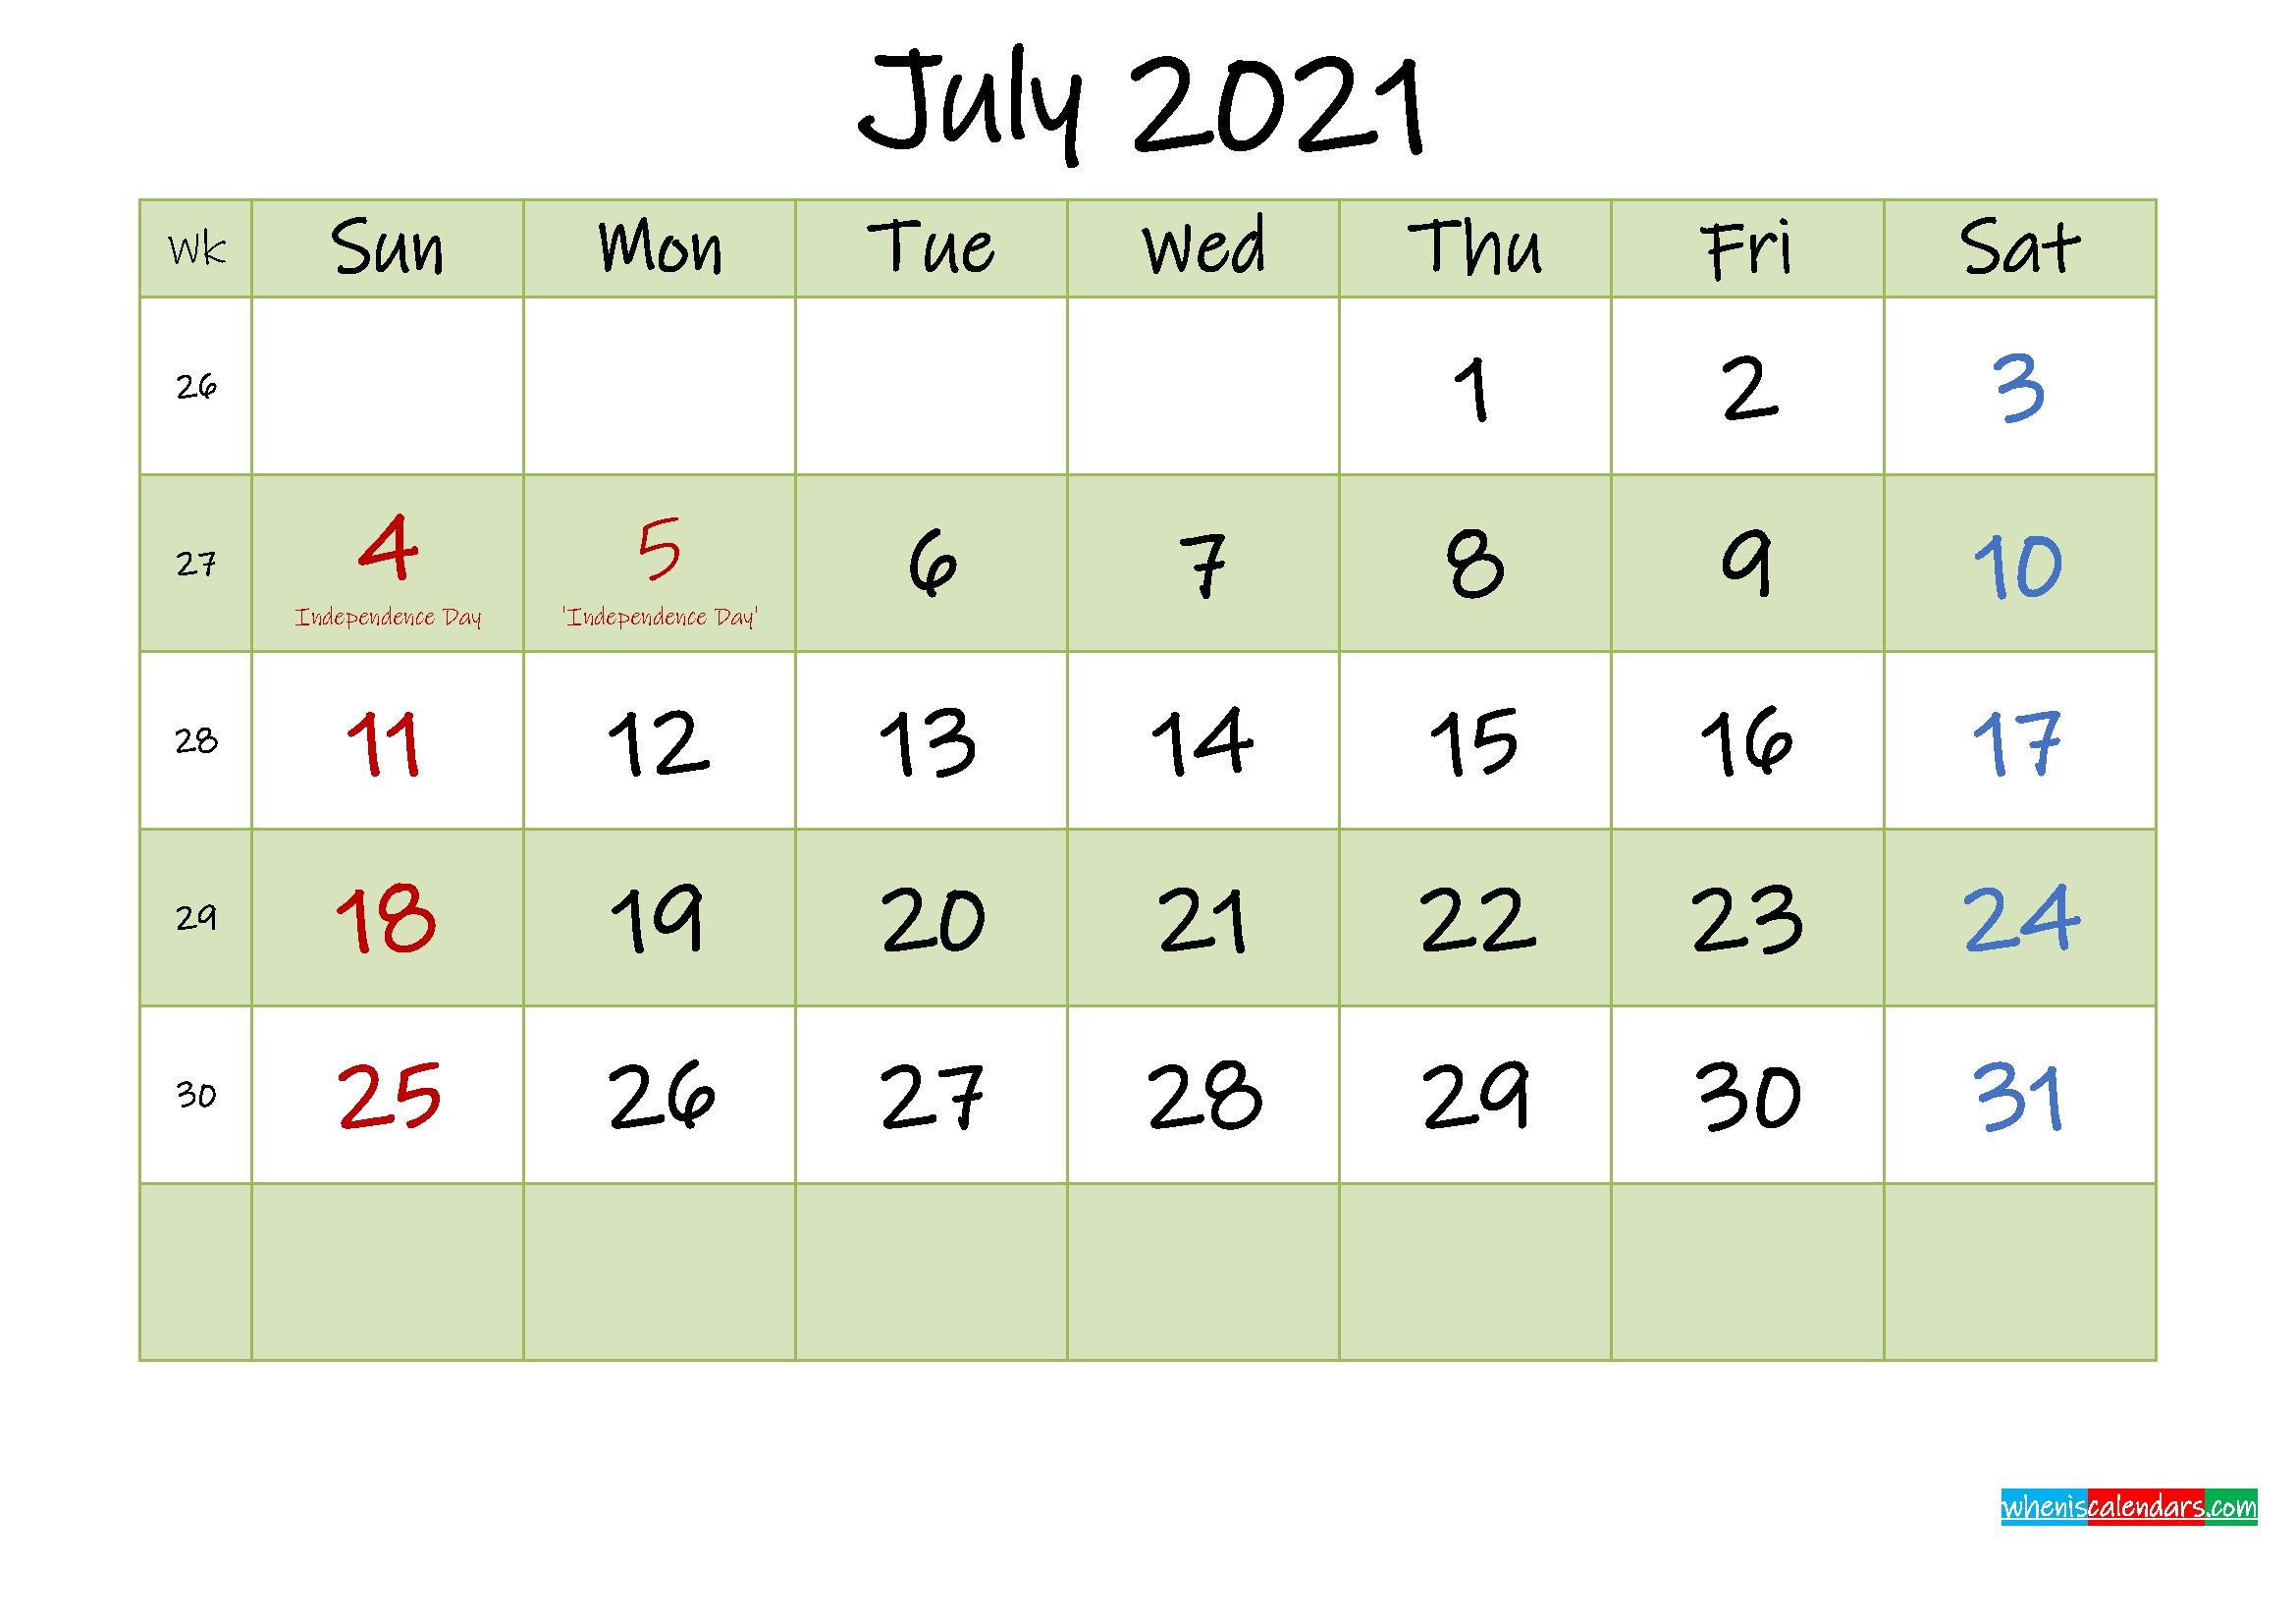 July 2021 Calendar With Holidays Printable - Template No.ink21M451 - Free 2020 And 2021 Calendar July 2021 Tithi Calendar